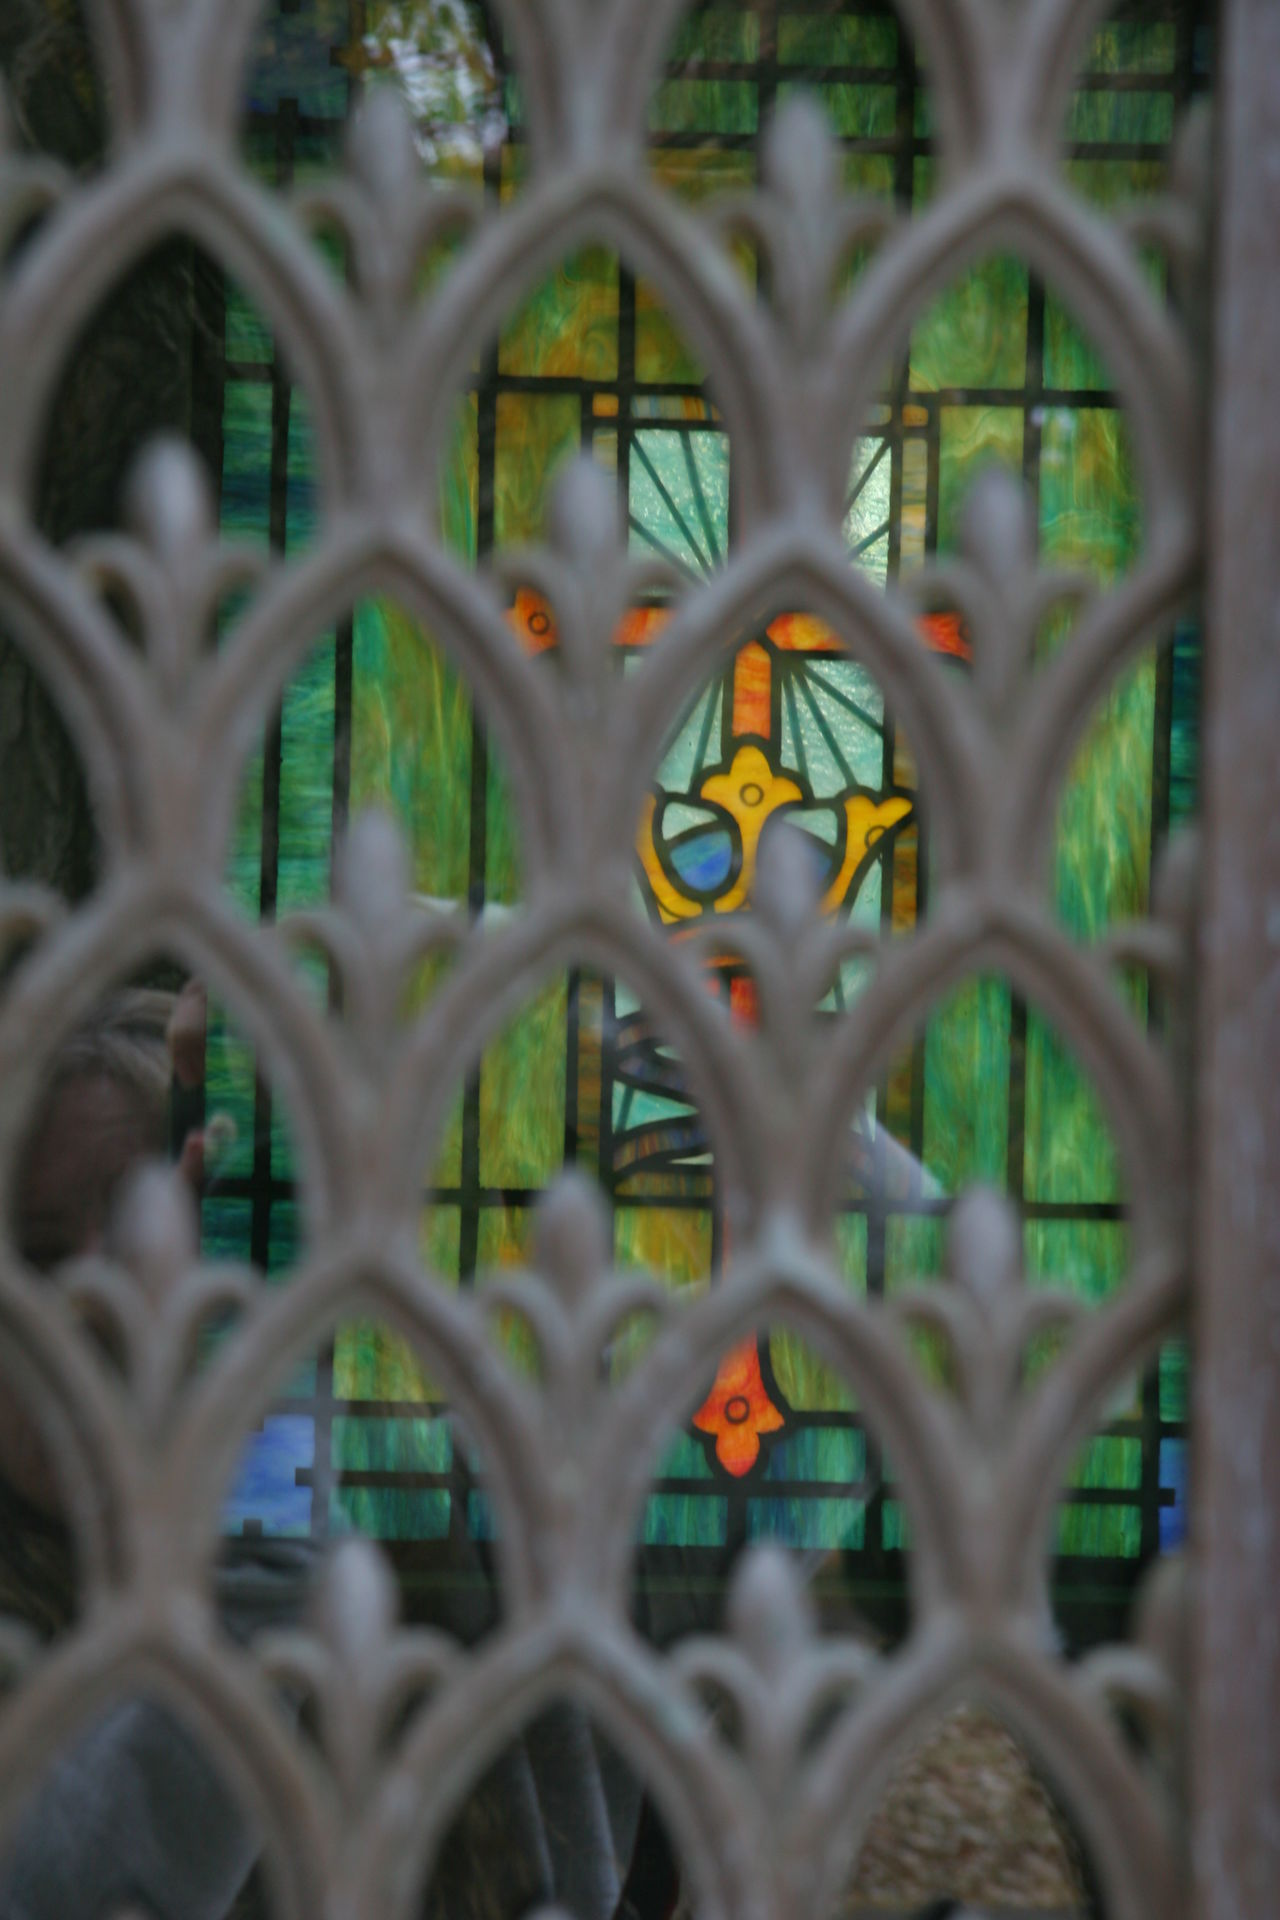 Cemetery Crypt Pattern Stained Glass Window